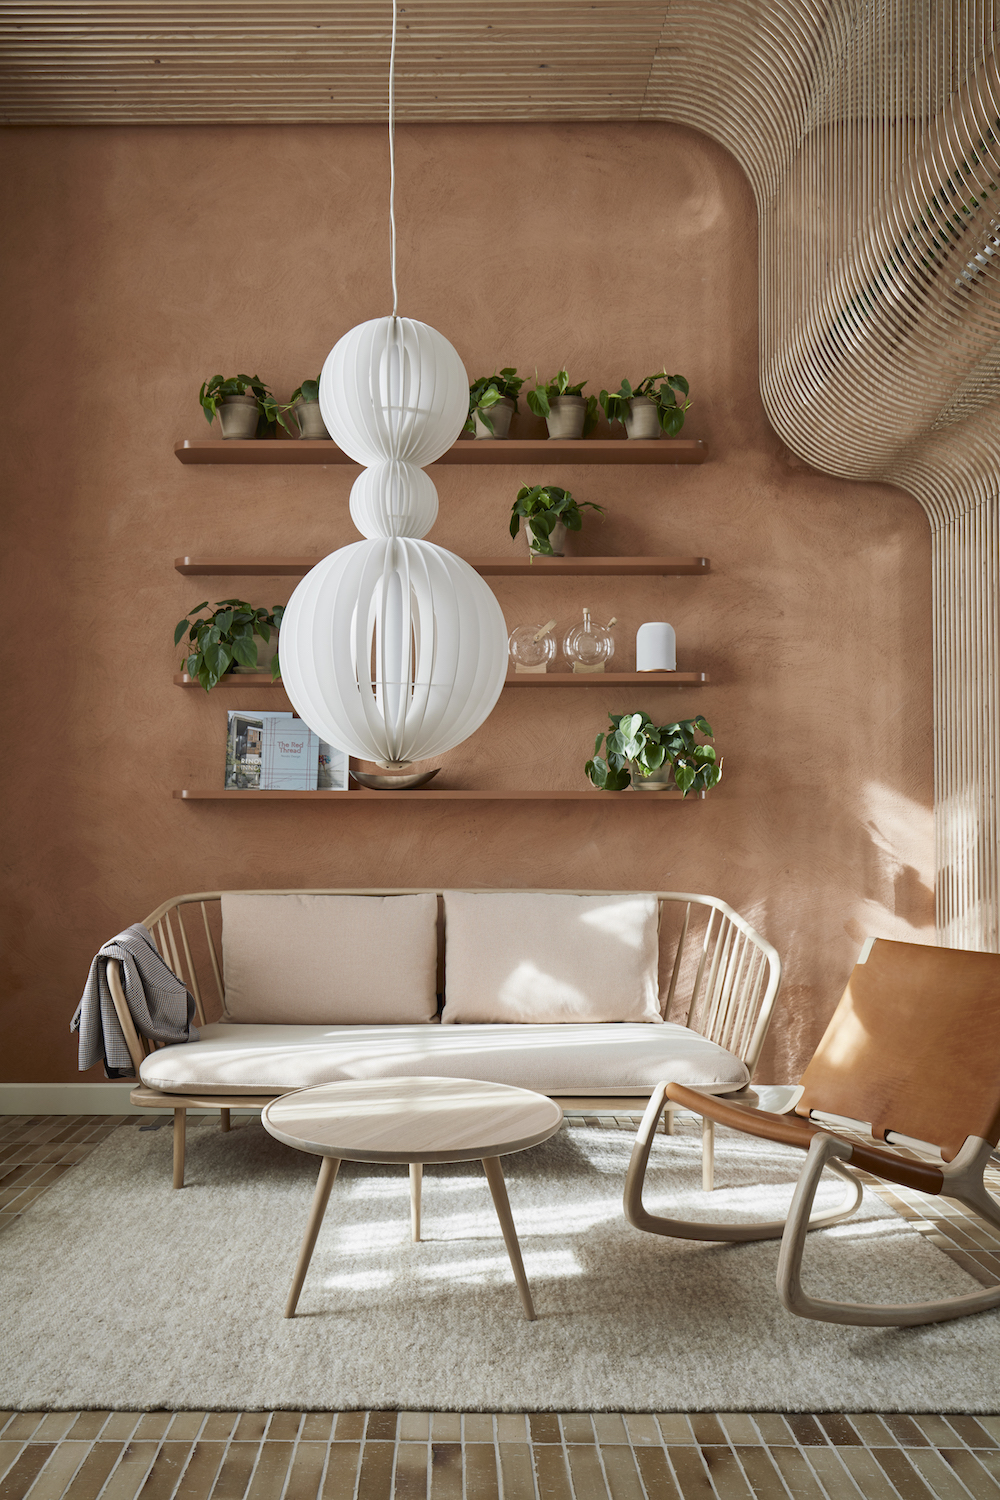 Image caption: Earth Suite | Image credit: Villa Copenhagen